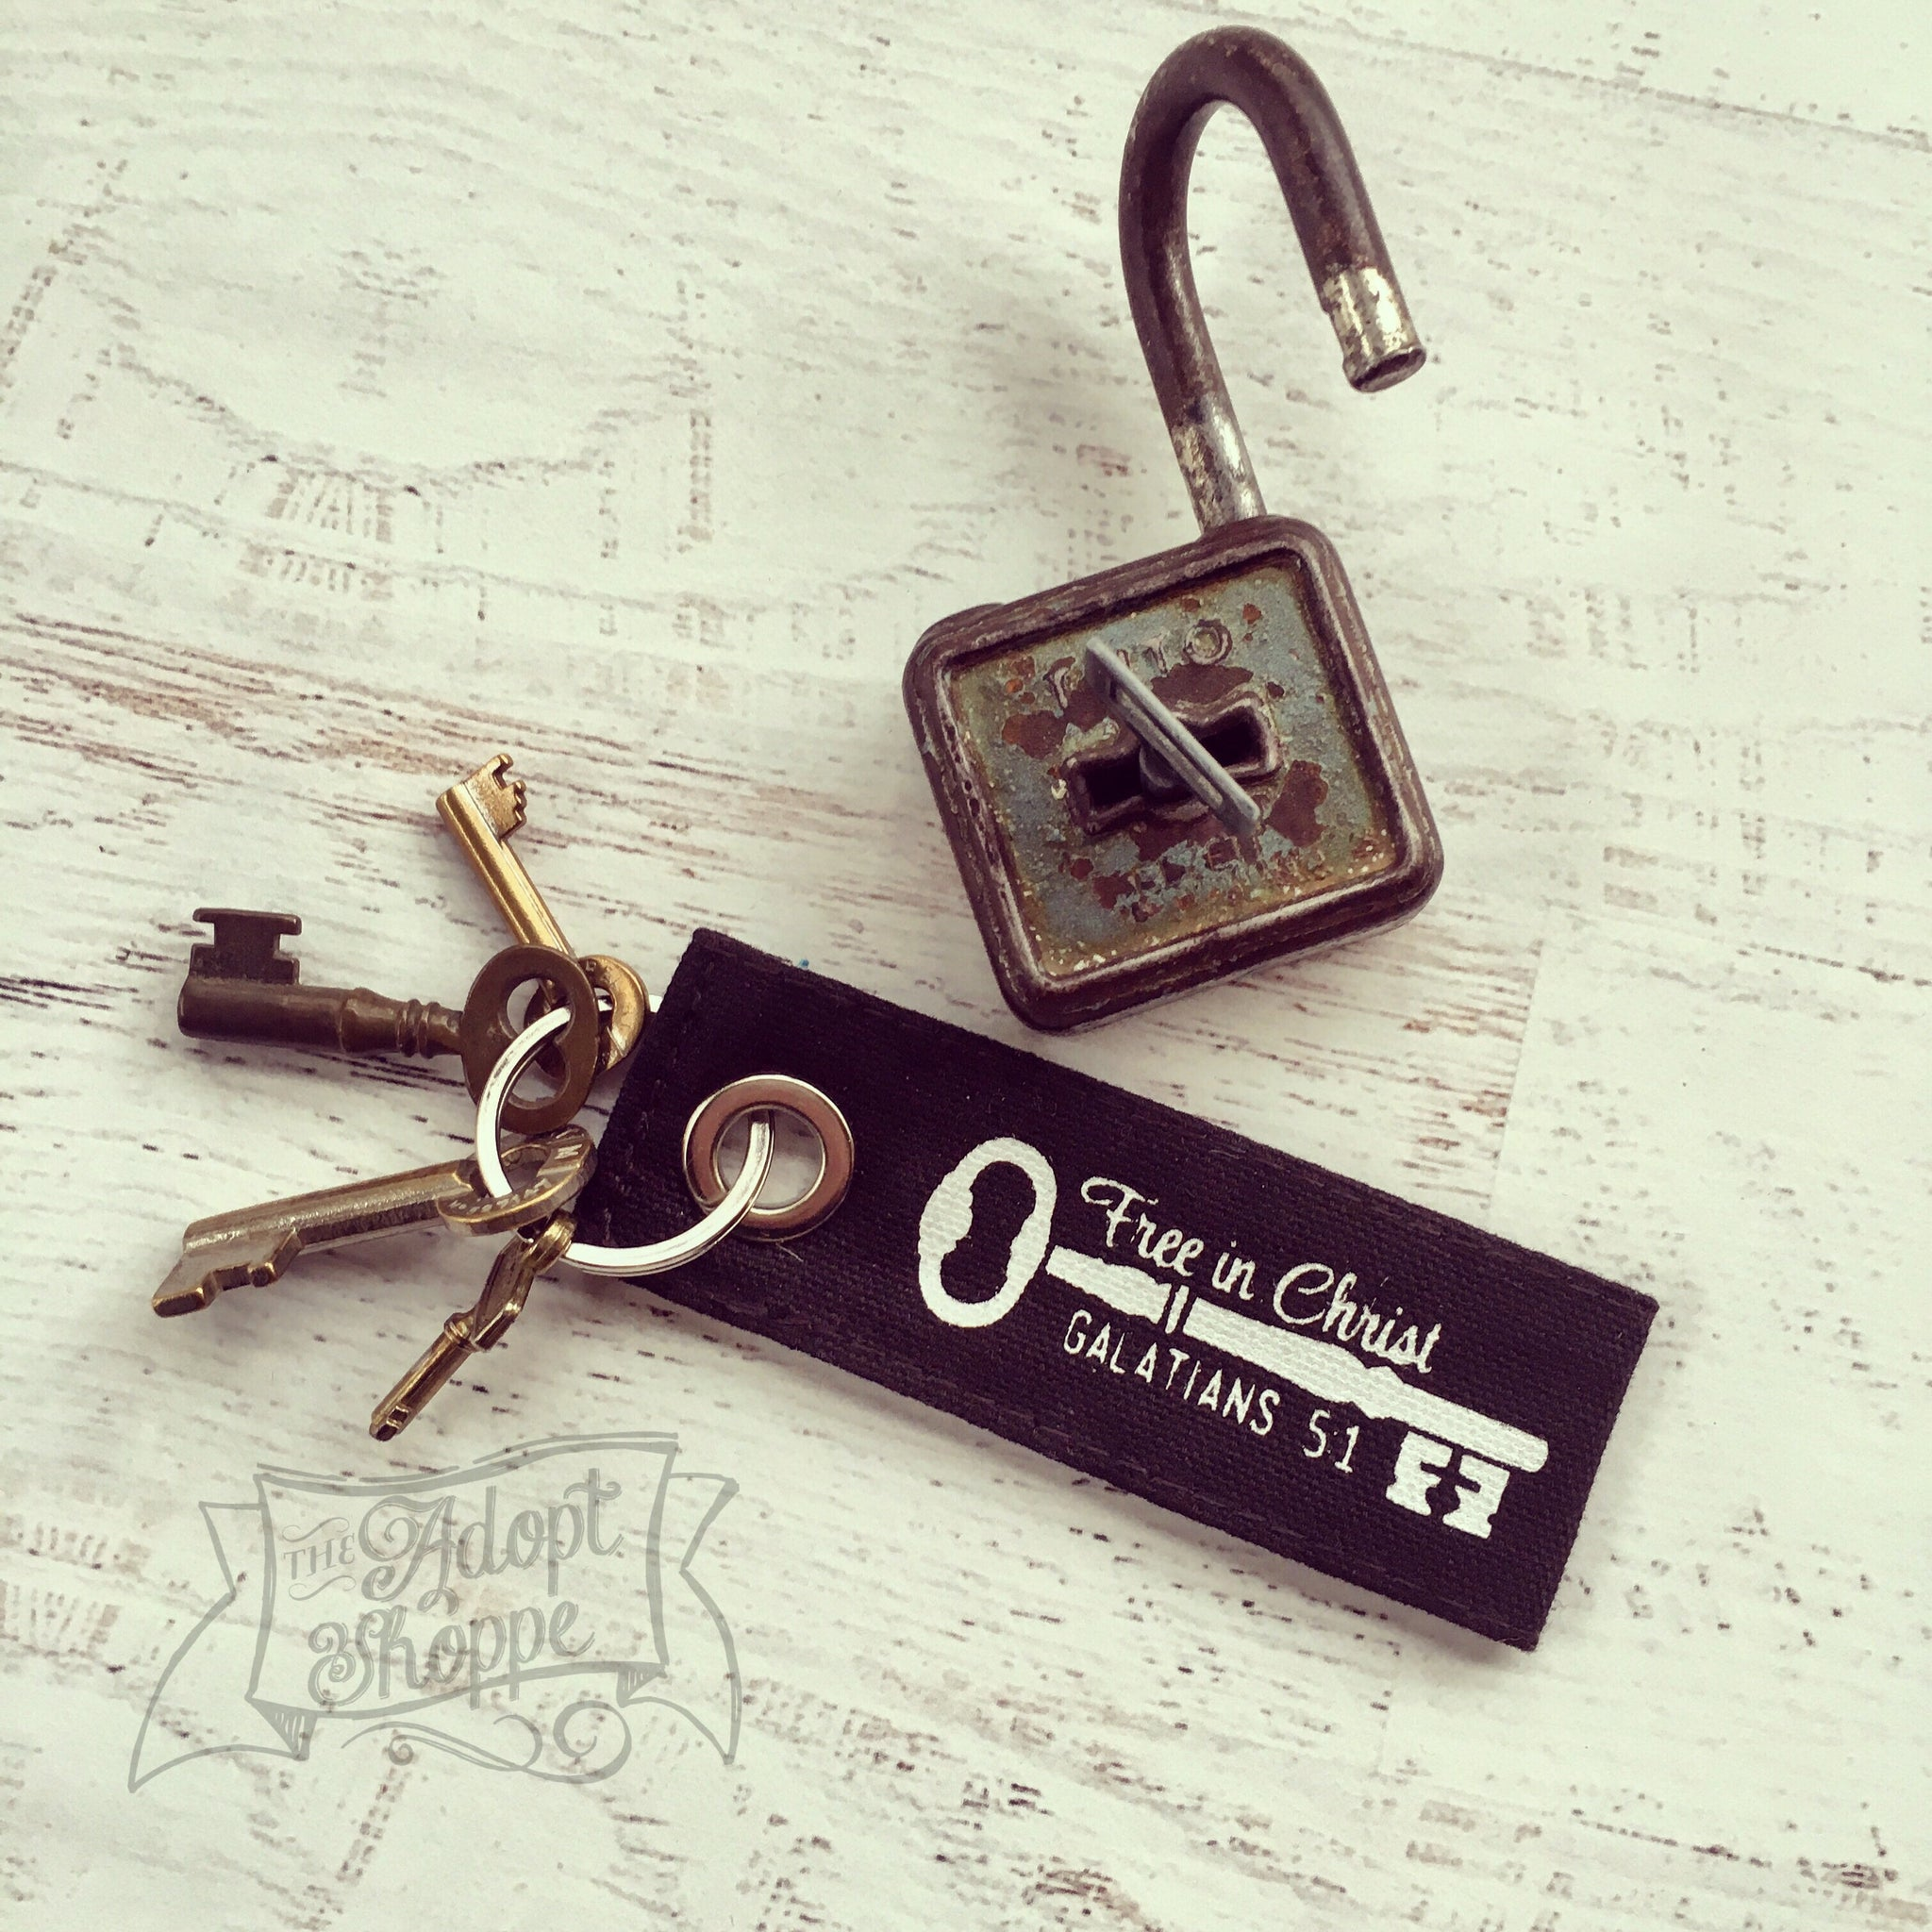 free in Christ black vintage key fair trade key fob – TheAdoptShoppe